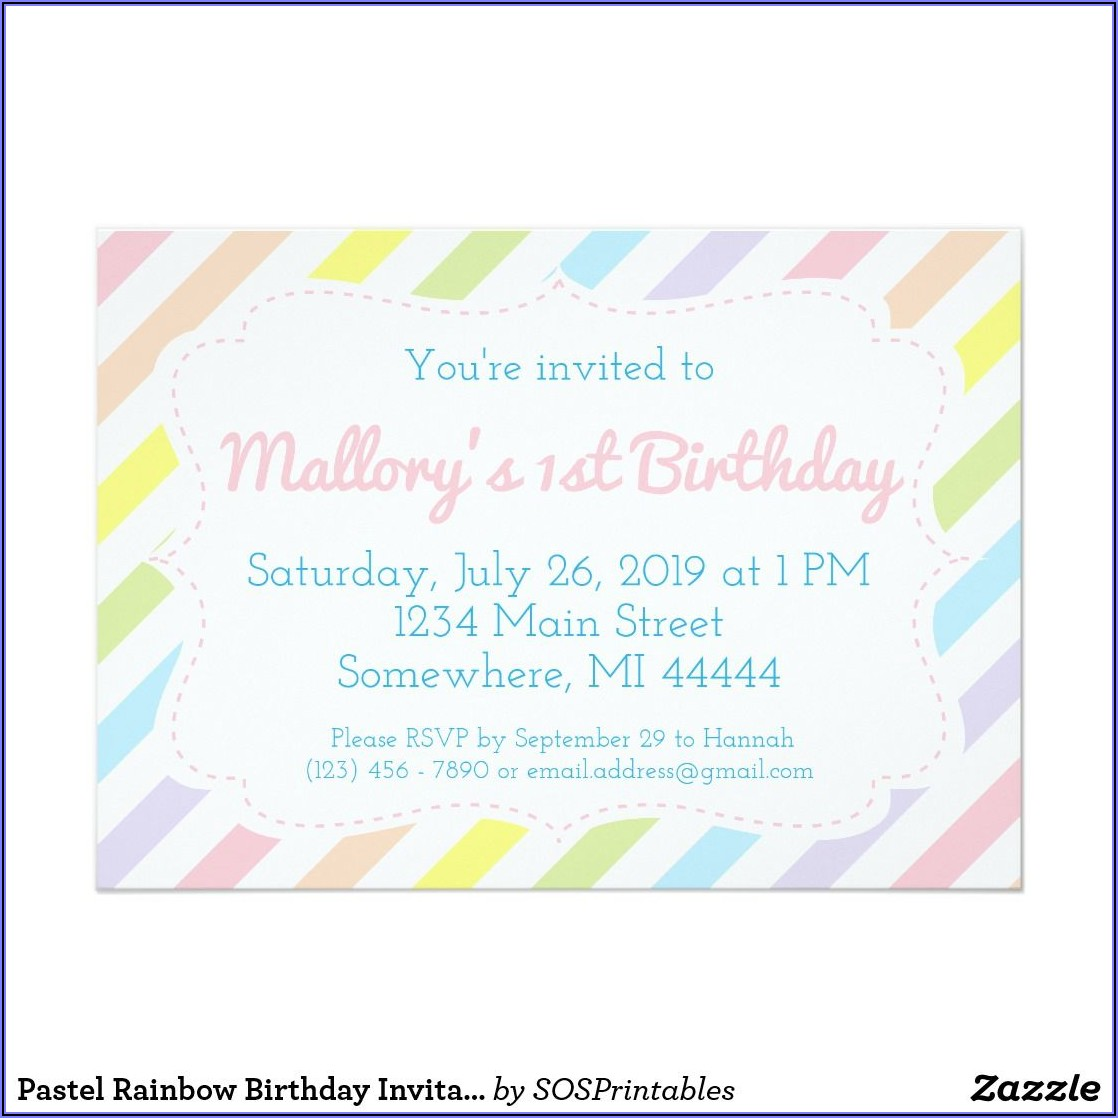 Pastel Rainbow Birthday Invitations